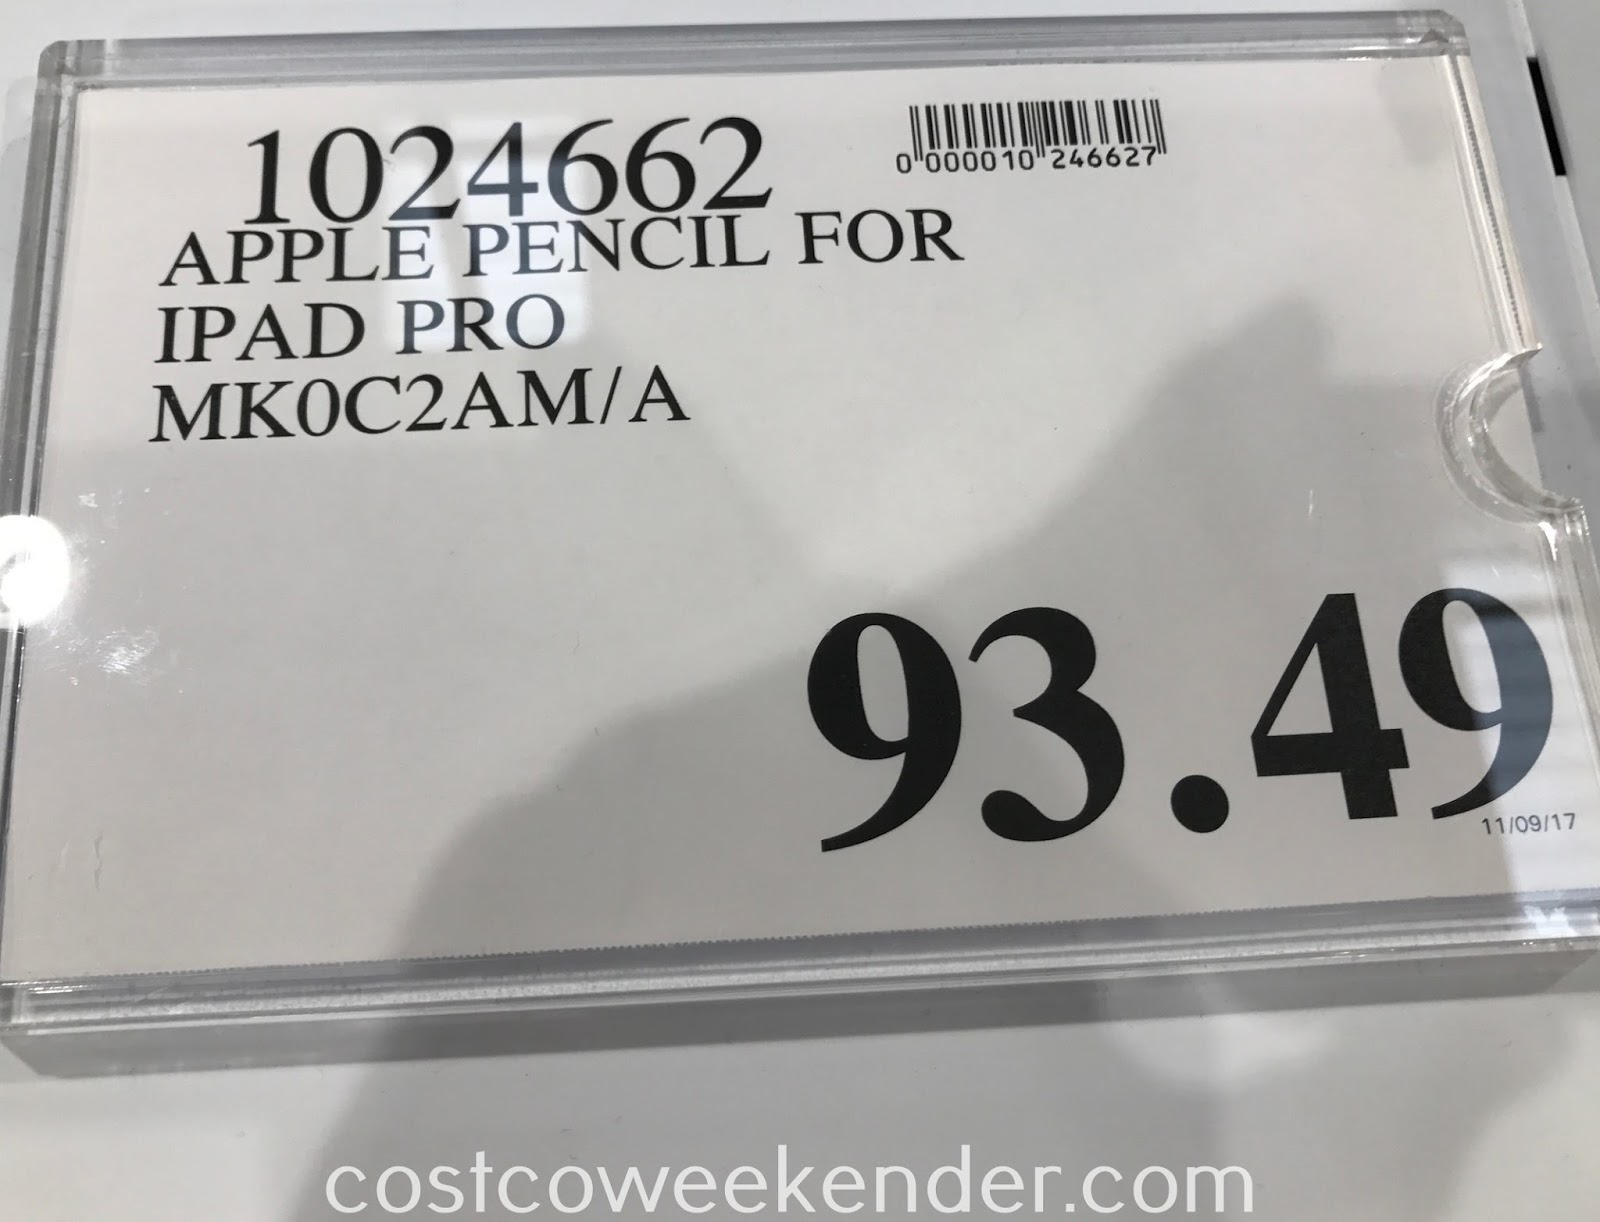 Deal for the Apple Pencil for iPad Pro (MK0C2AM/A) at Costco